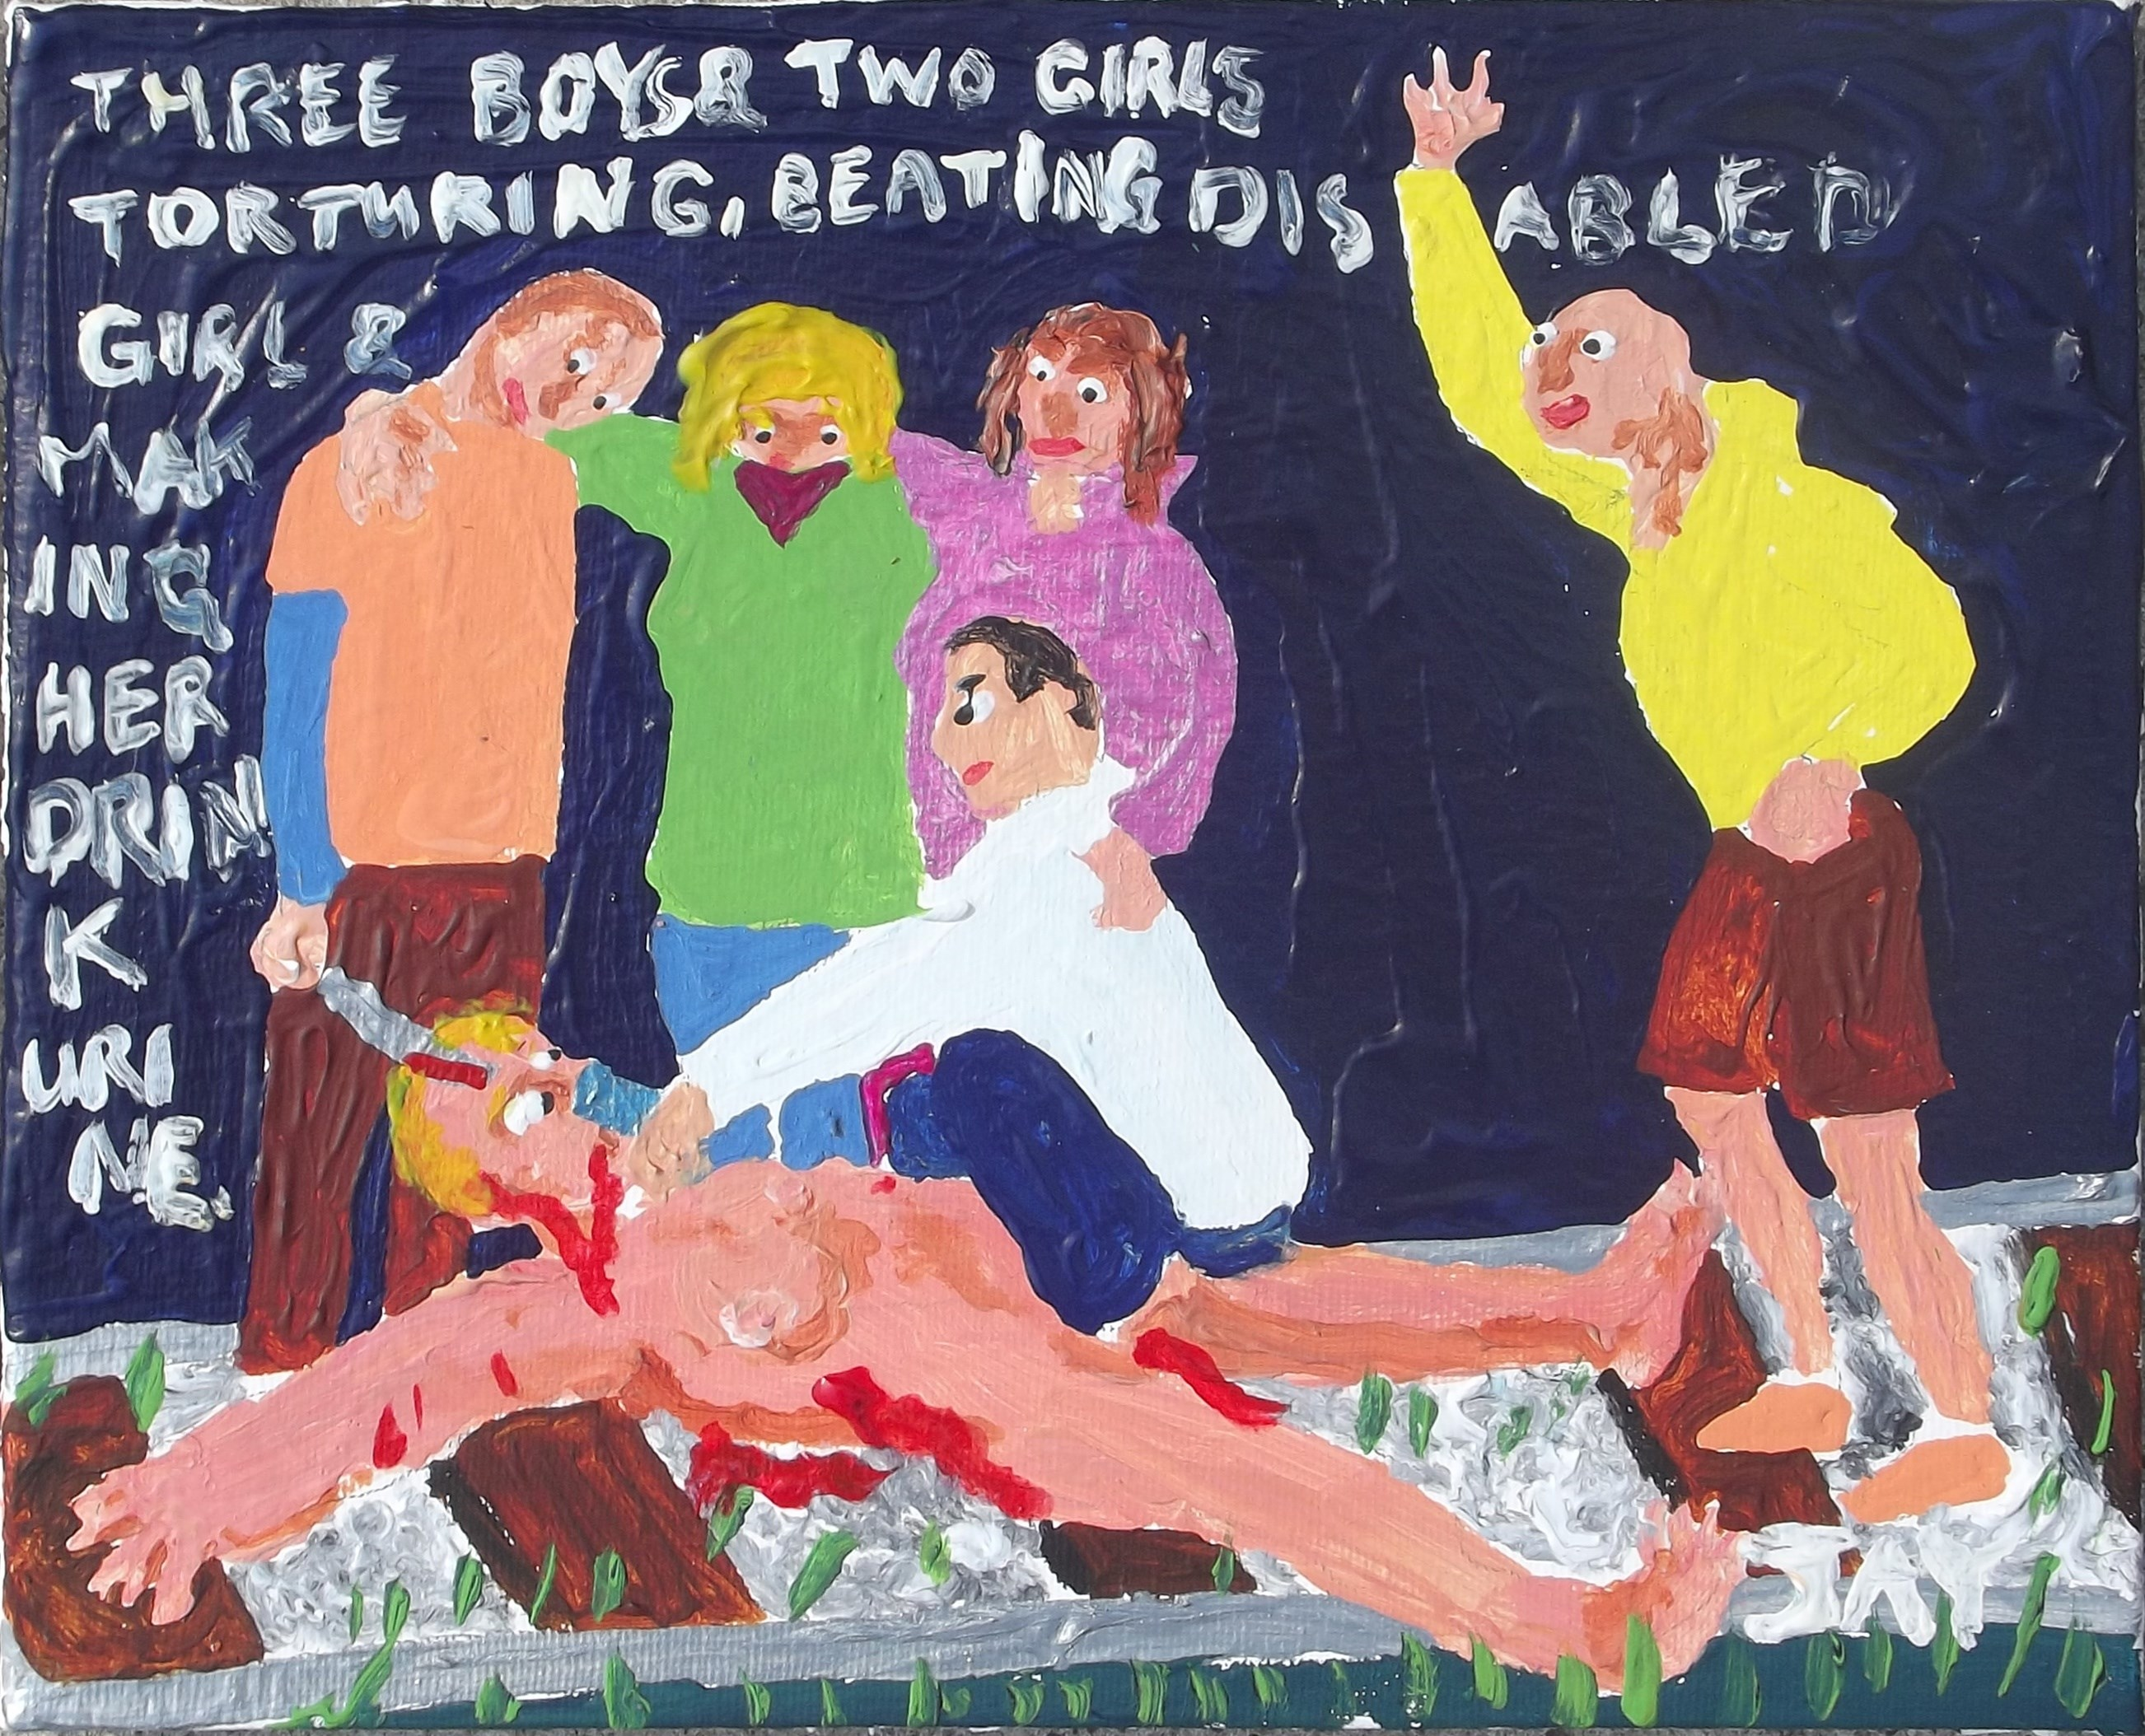 Three boys & two girls are torturing, beating disabled girl & making her drink urine., Pintura Acrílico Vanguarda original por Jay Rechsteiner